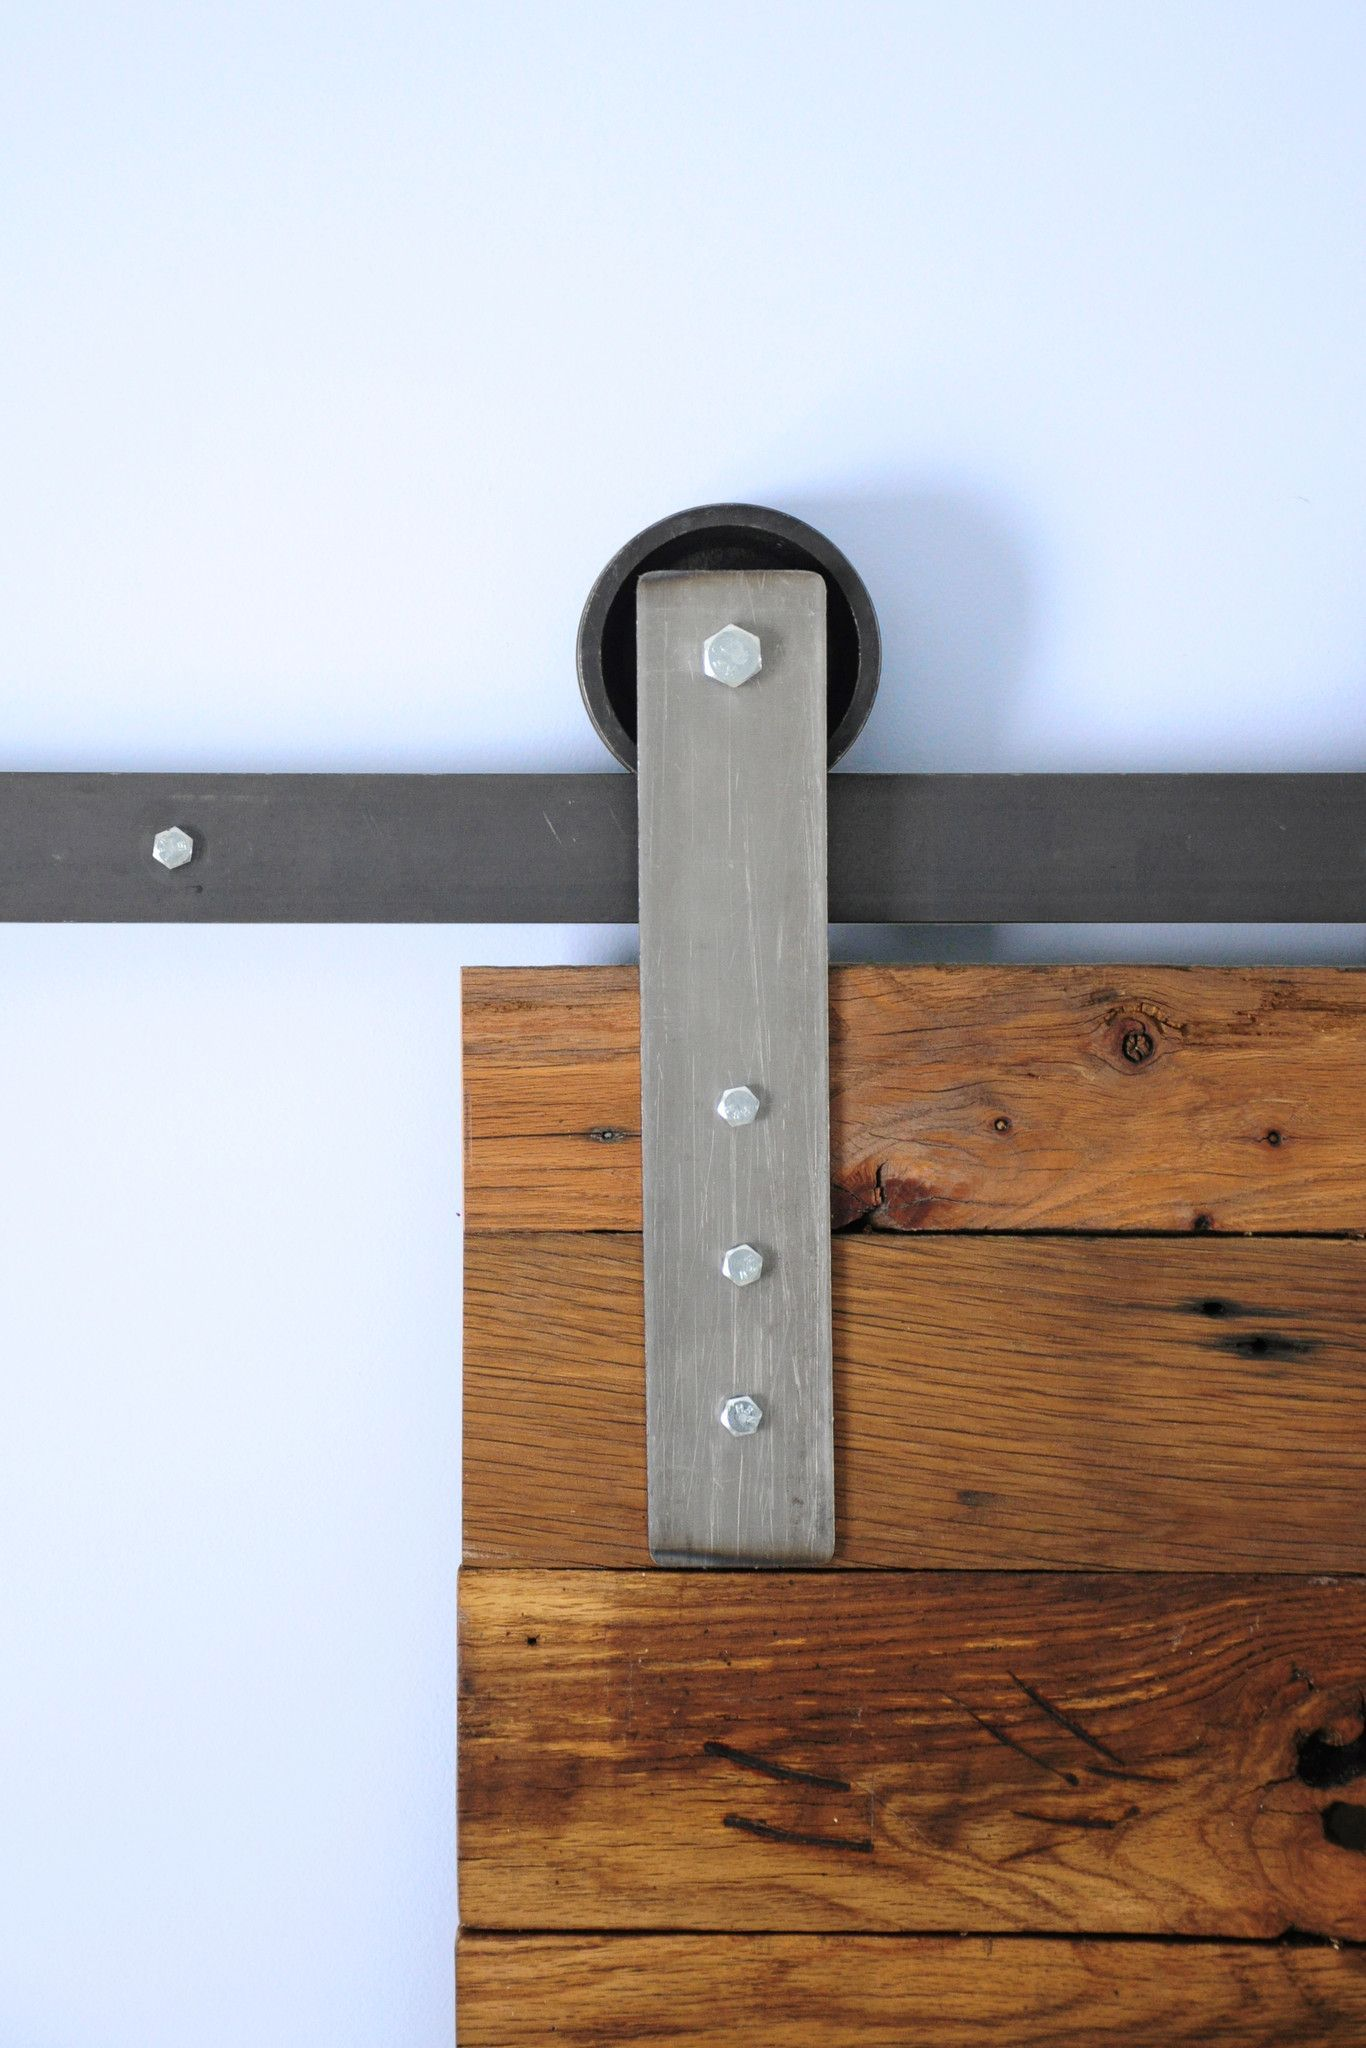 The Modern Flat Gets Its Name From The Clean And Simple Design That Yields Its Modern Look In This Double Barn Door Hardware Kit This Har Sliding Barn Door Hardware Barn